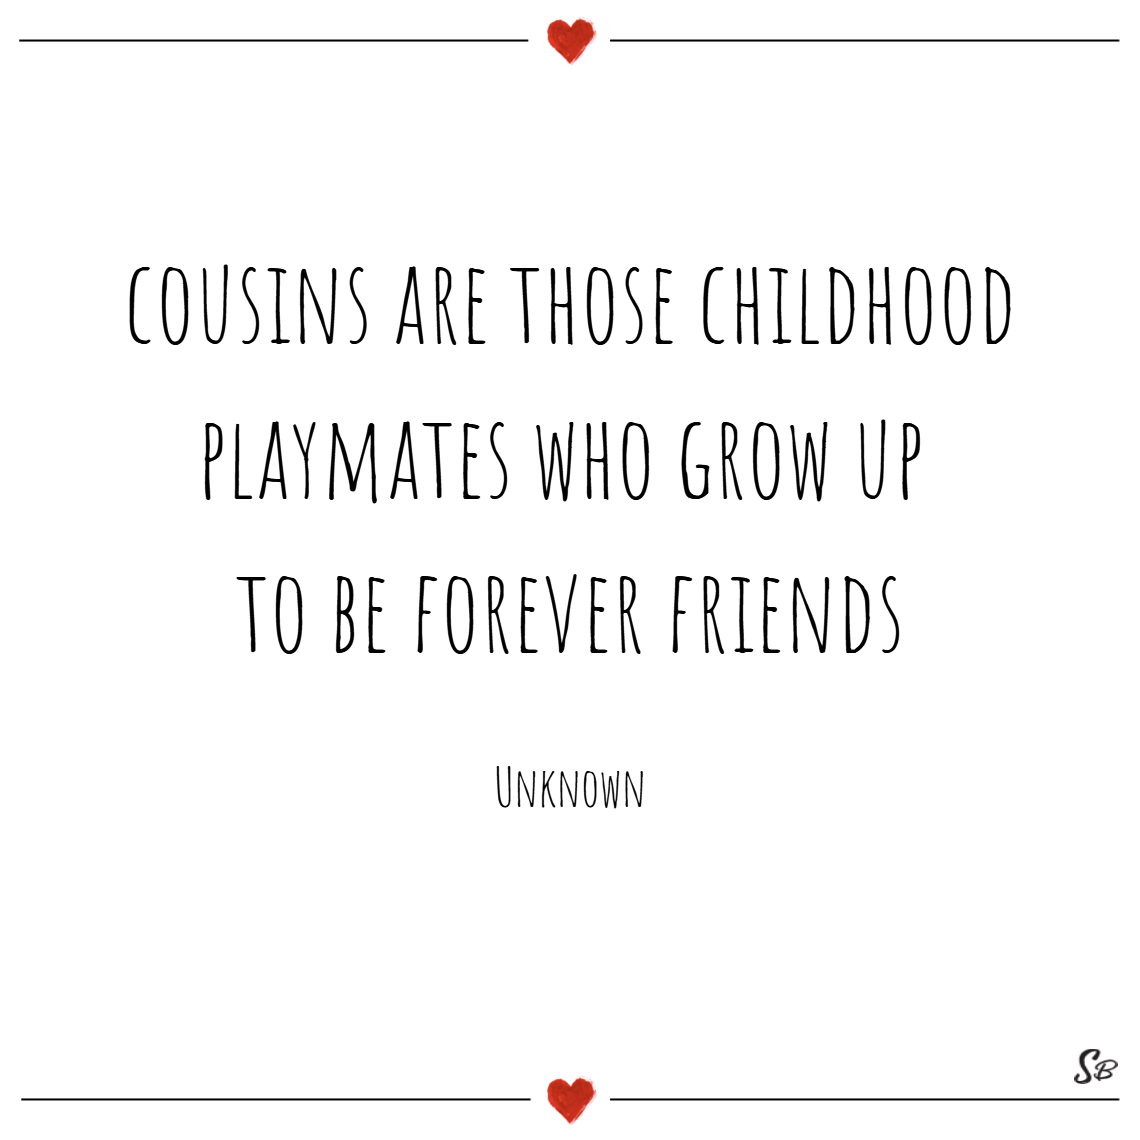 Cousins are those childhood playmates who grow up to be forever friends. – unknown